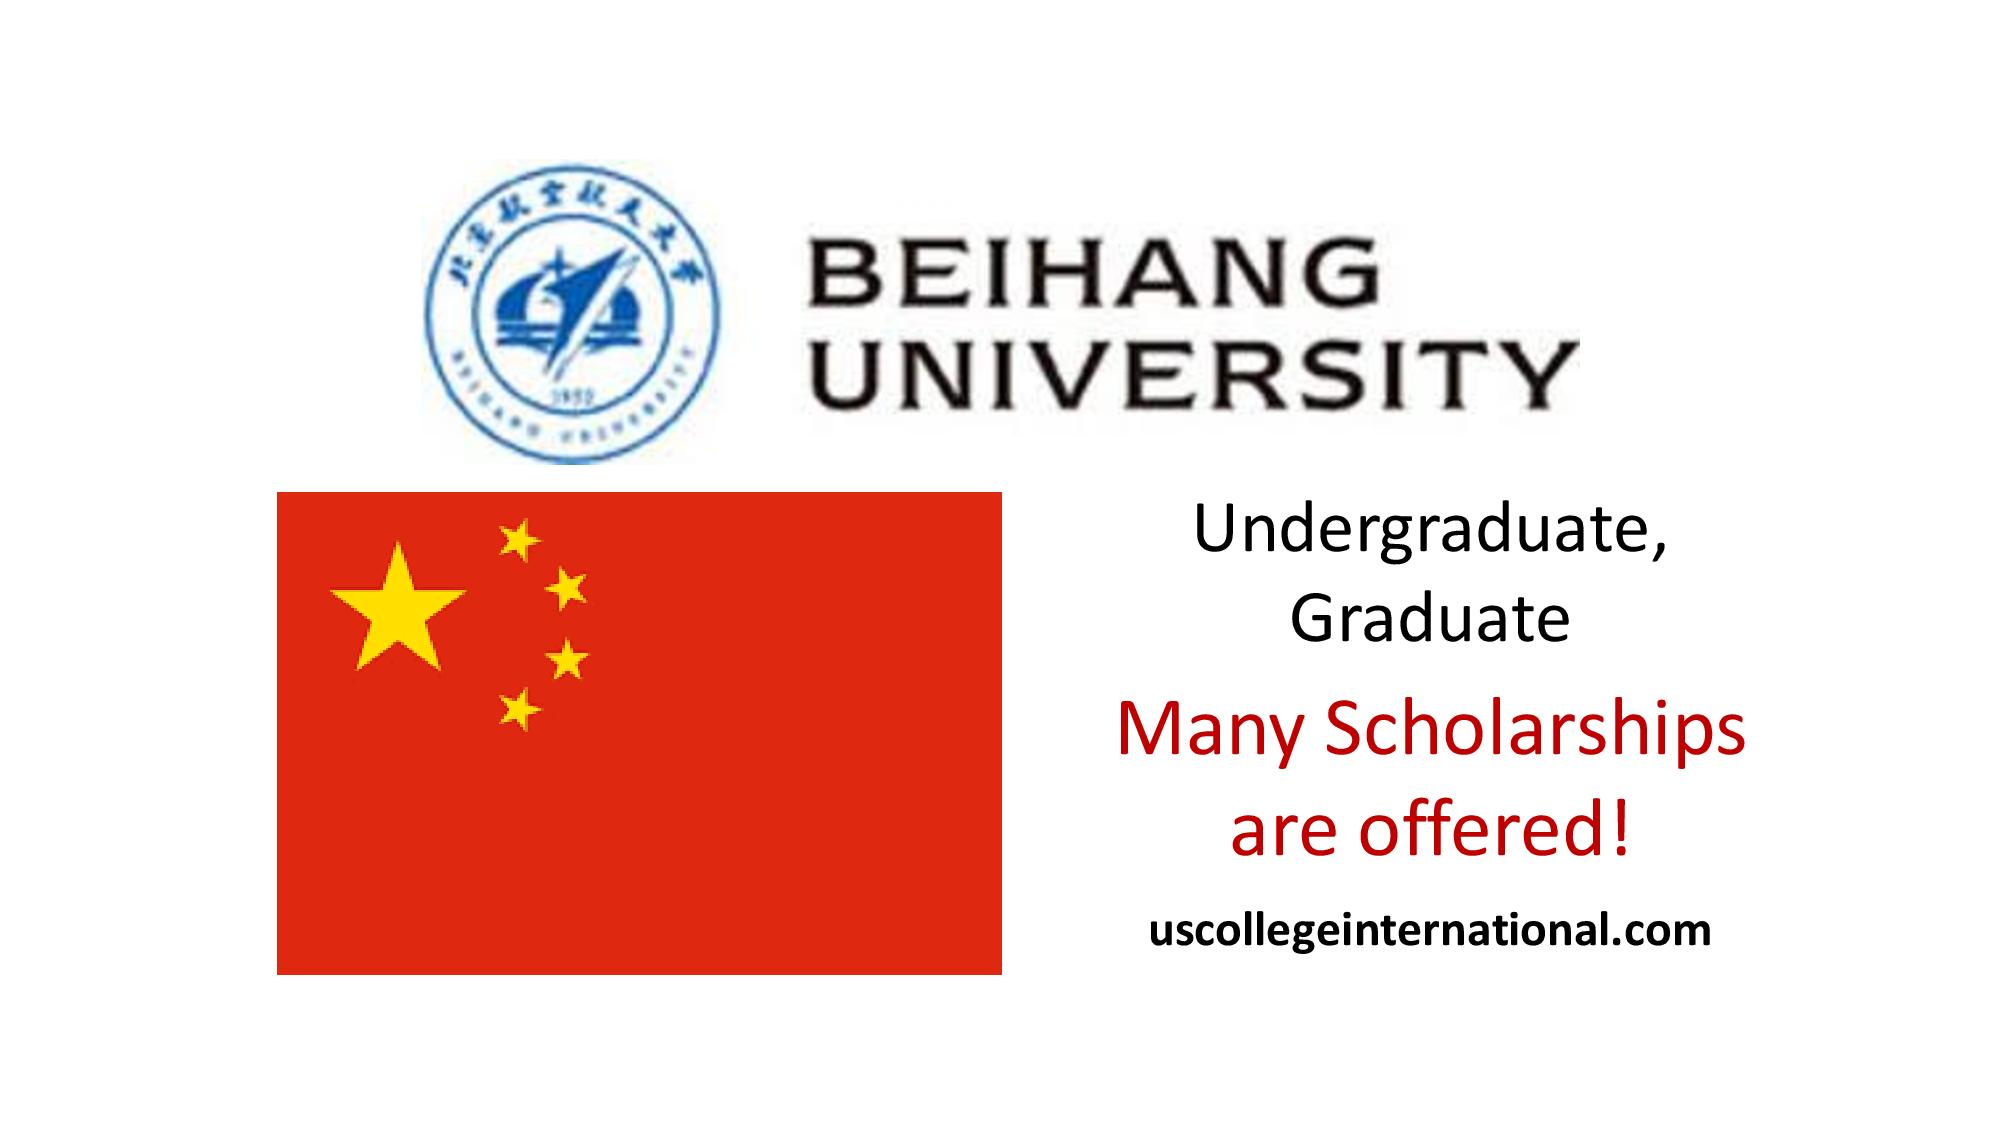 Beihang University Scholarships